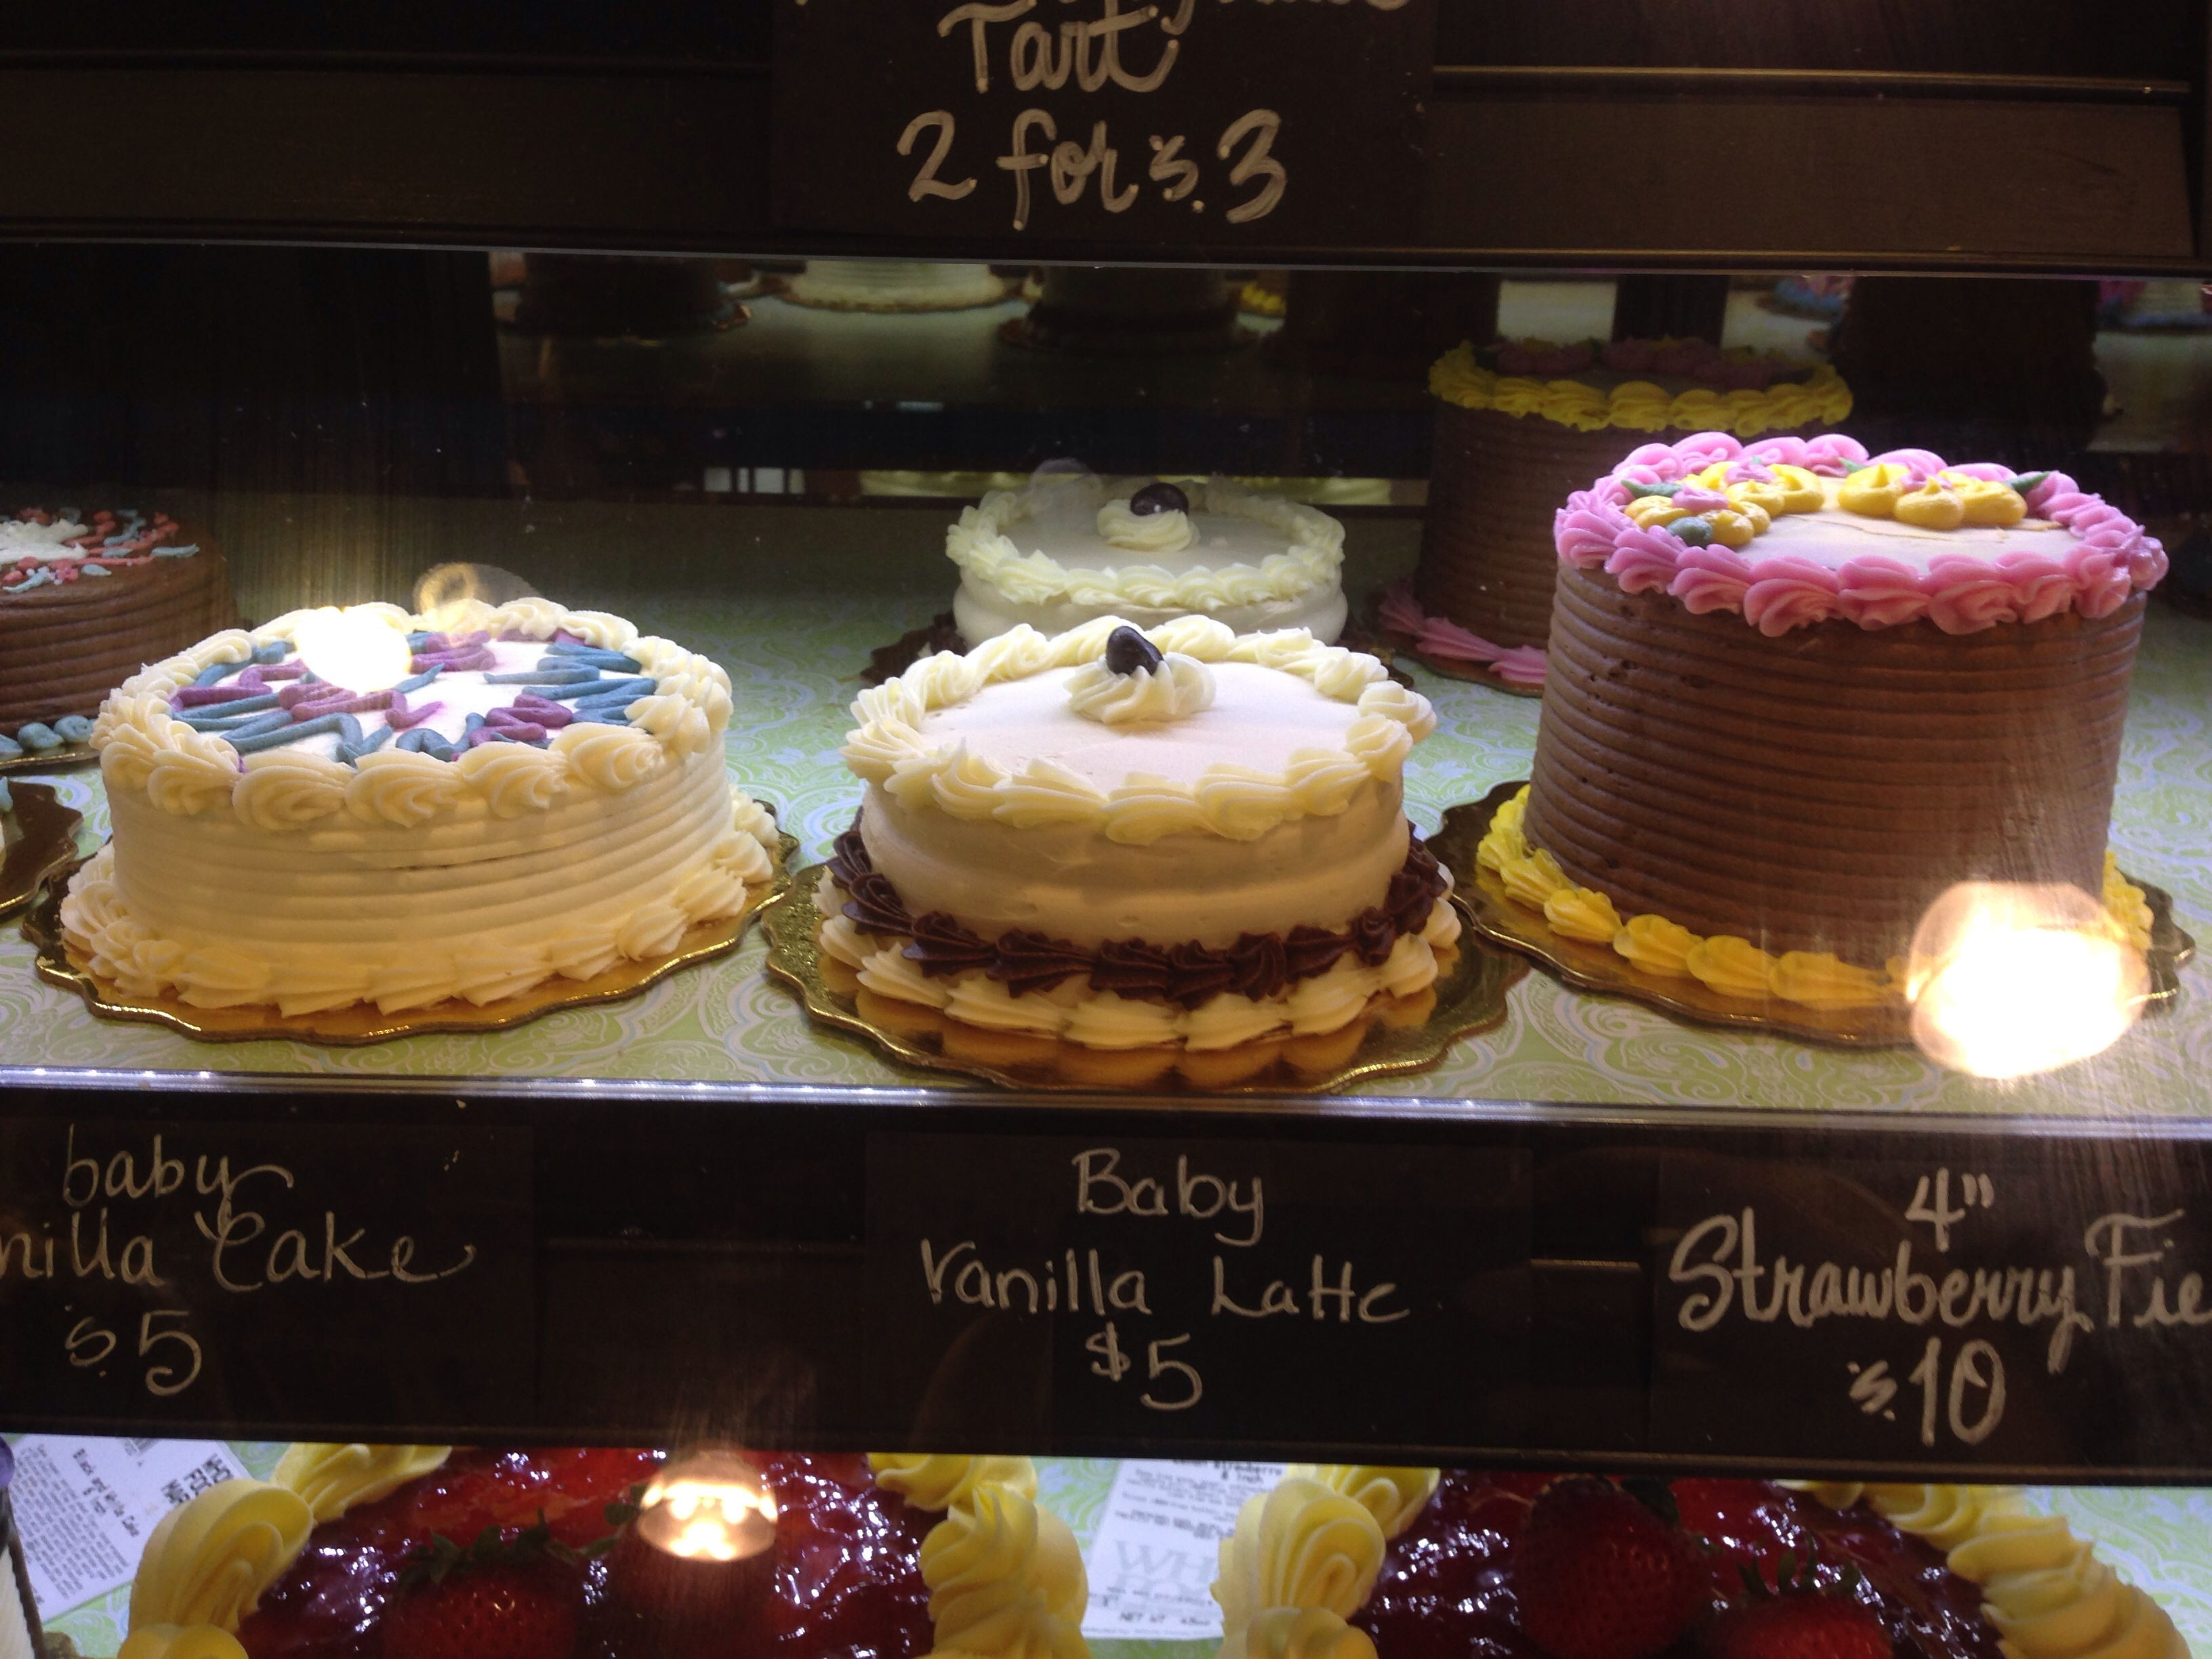 Best ideas about Whole Foods Birthday Cake . Save or Pin Perfect sized smash cakes at Whole Foods Now.